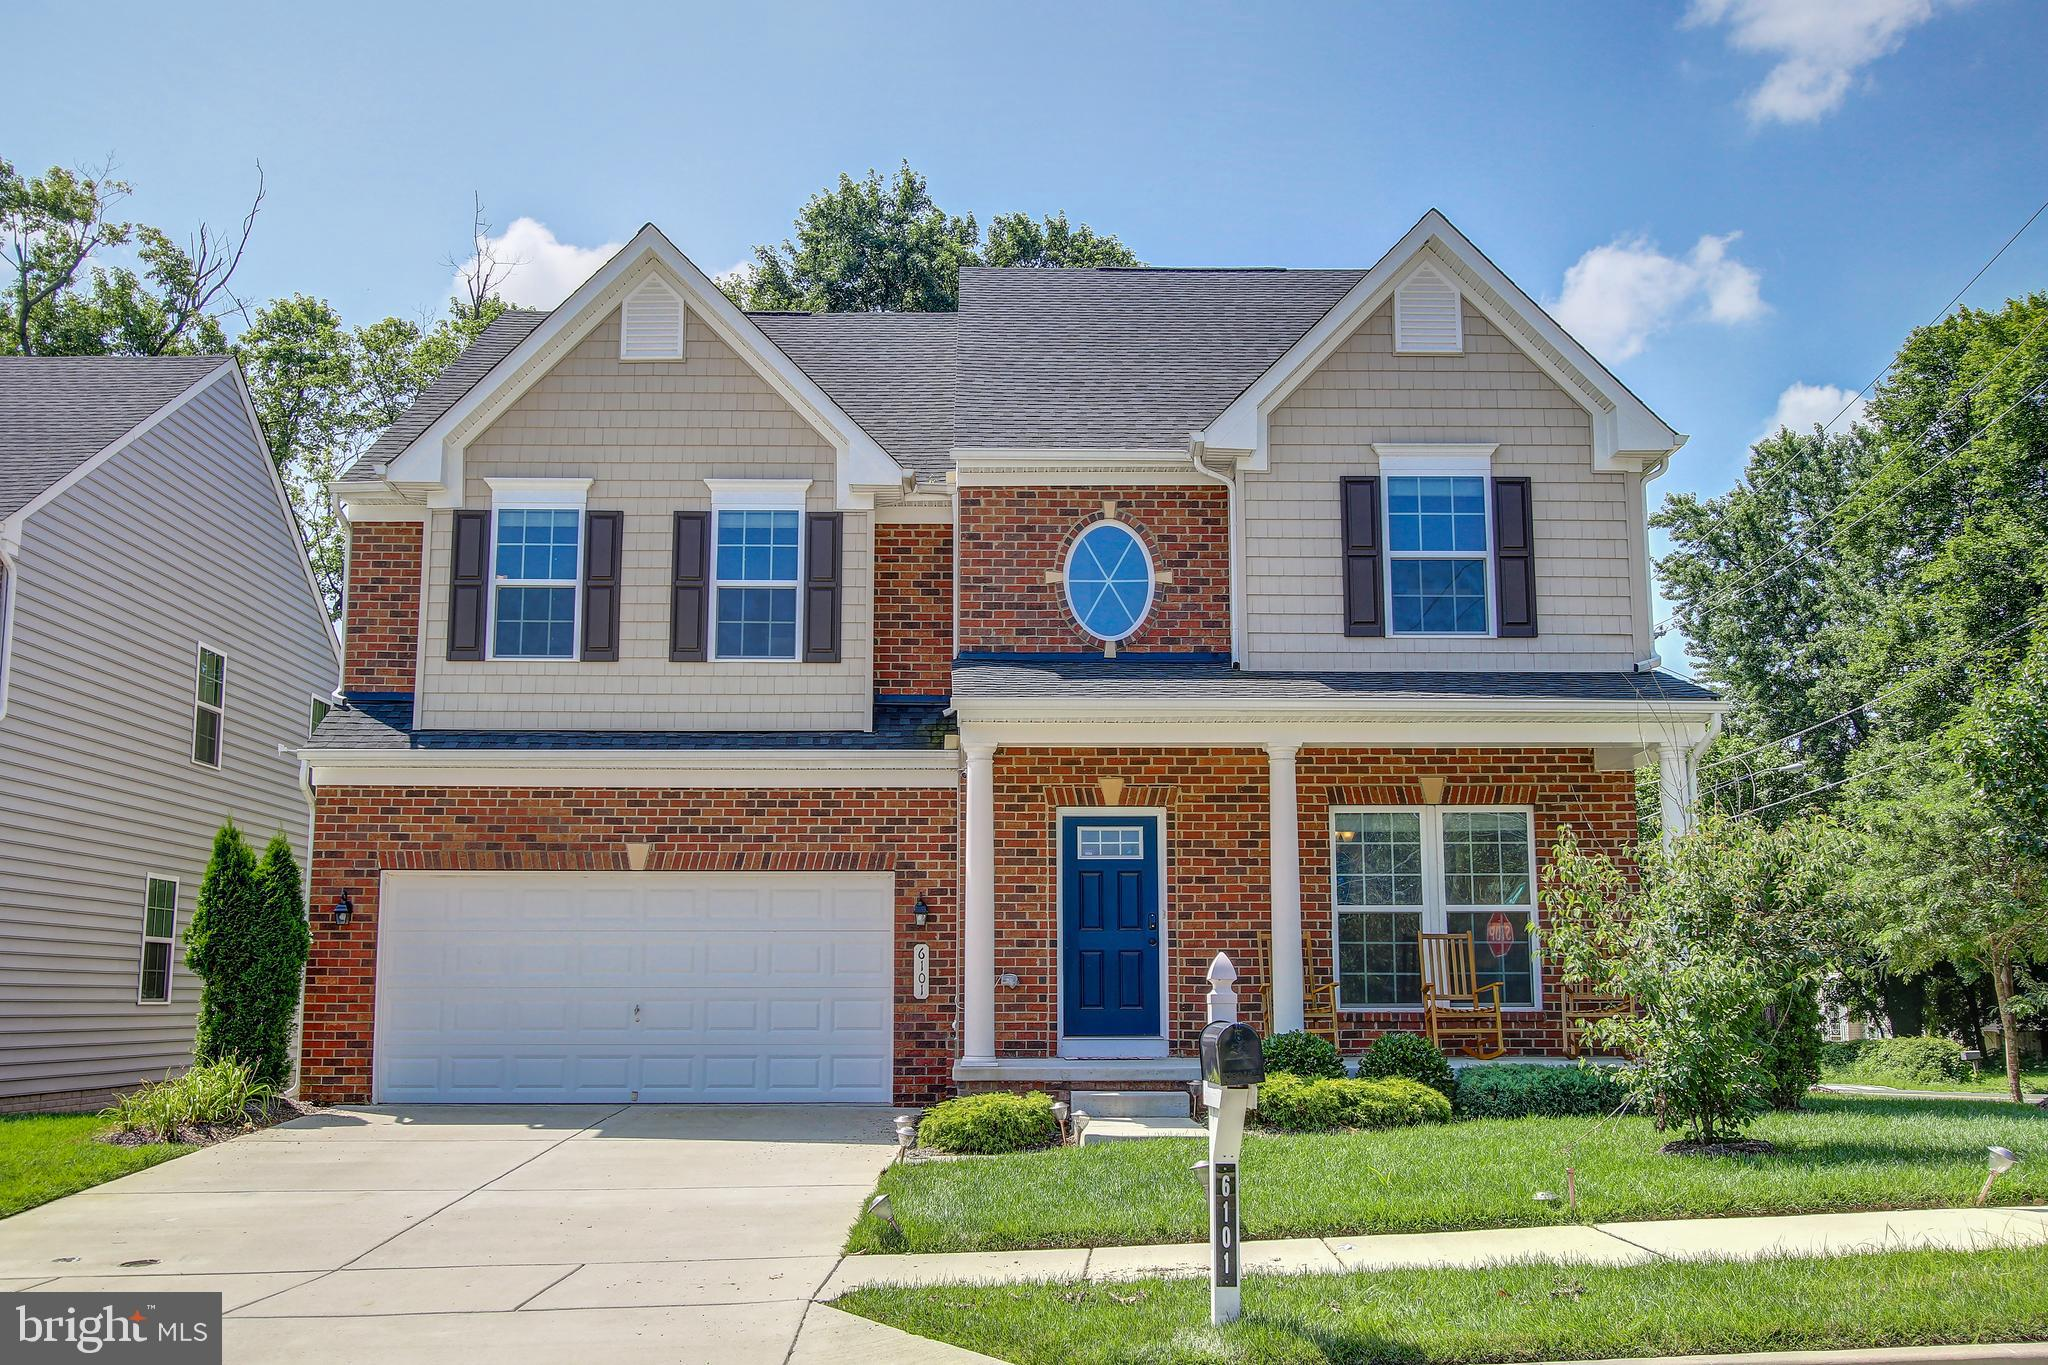 6101 PALATINE AVENUE, CAPITOL HEIGHTS, MD 20743